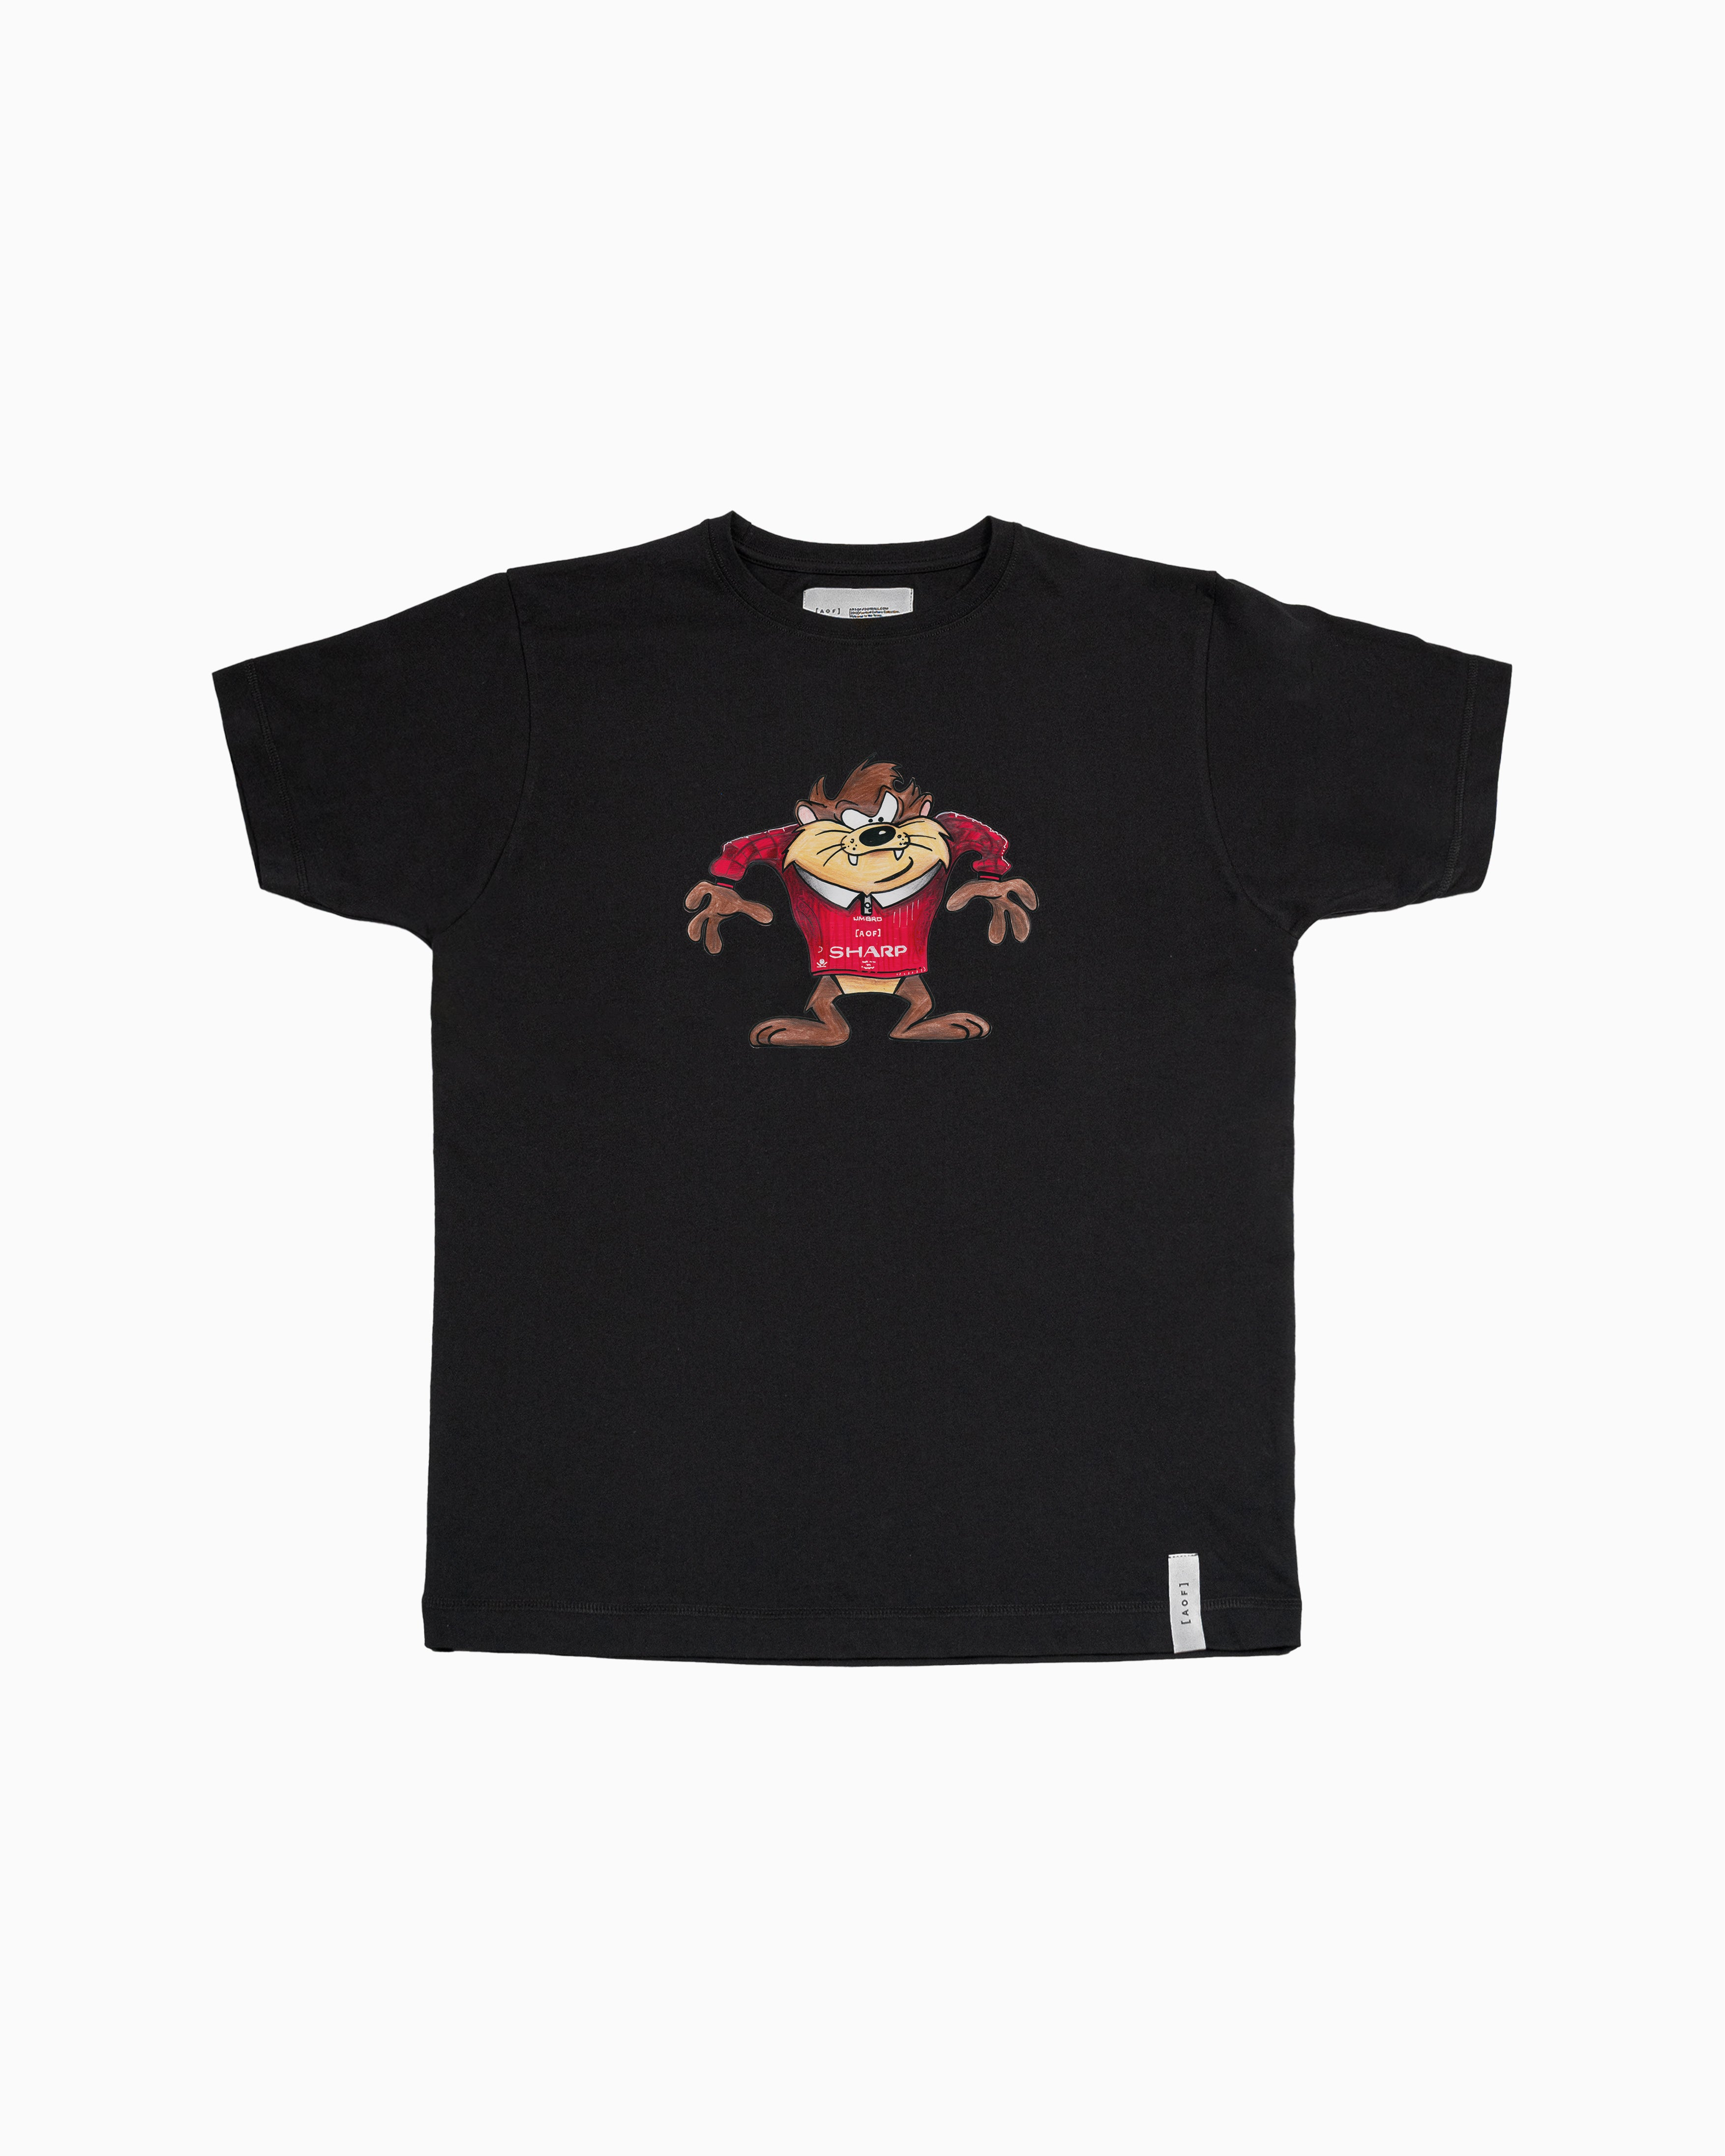 Red Devil - Tee or Sweat